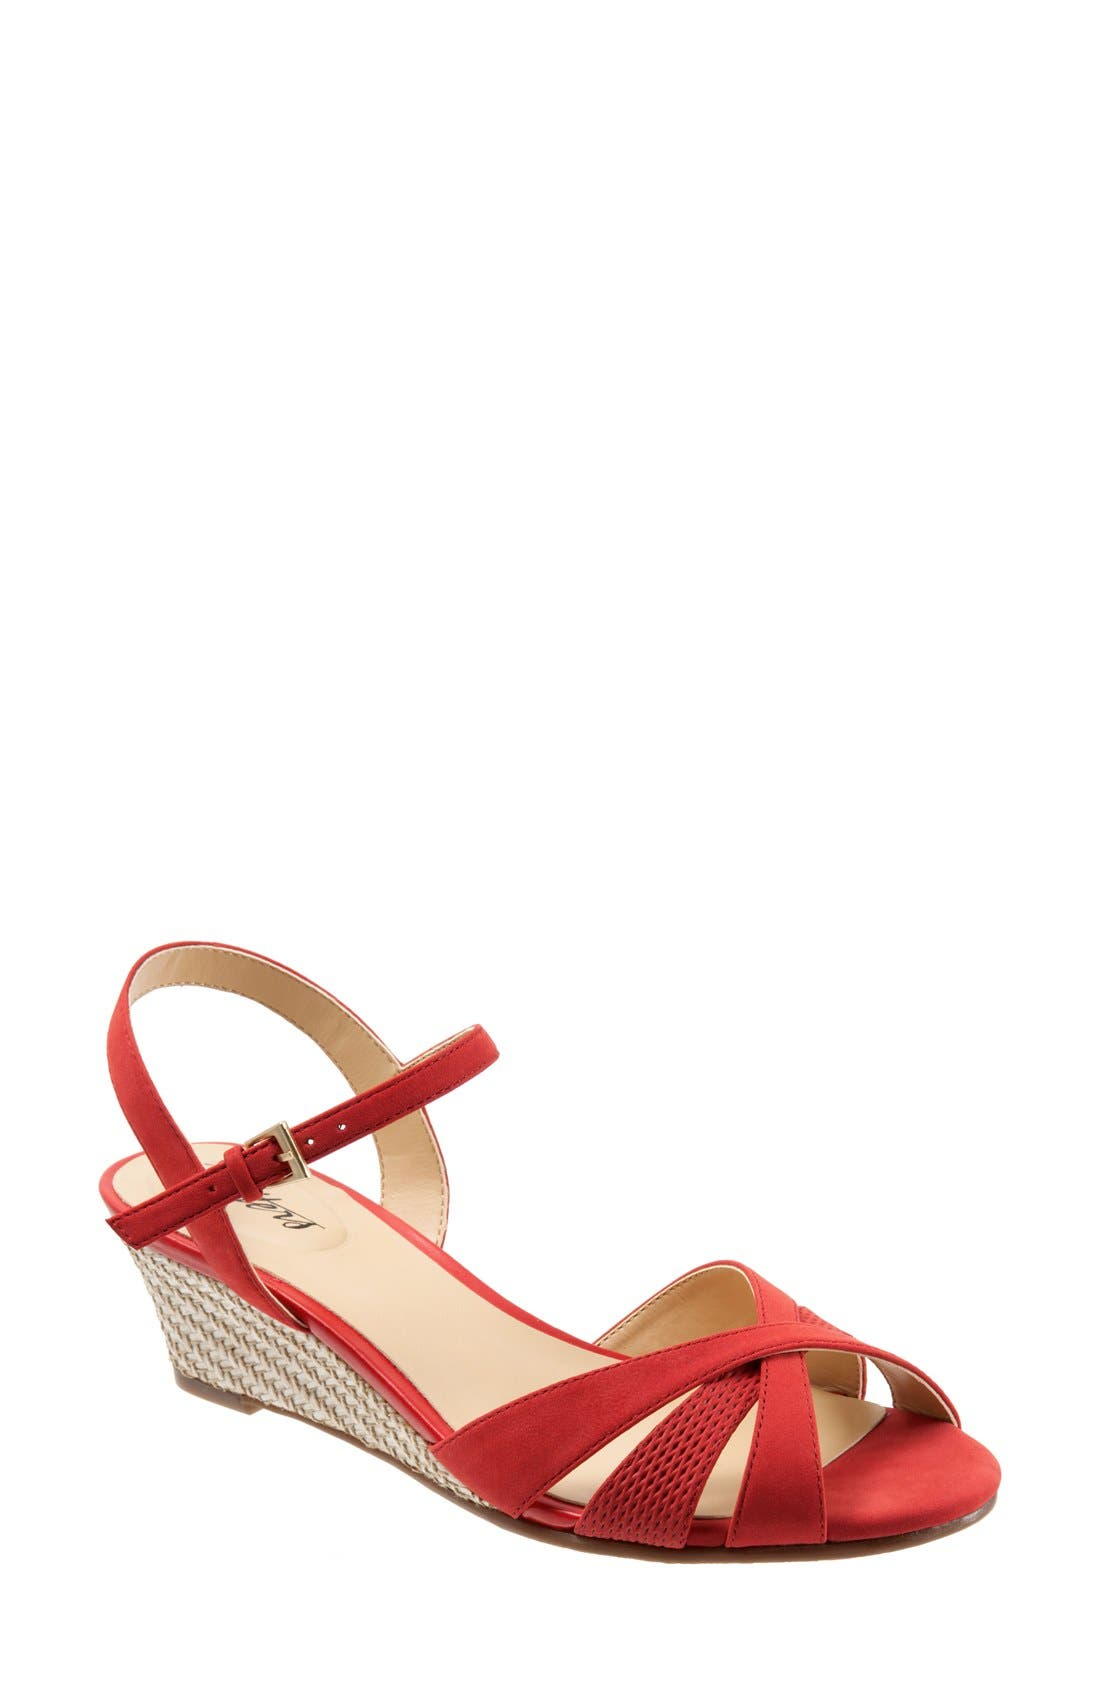 'Mickey' Wedge Sandal,                         Main,                         color,